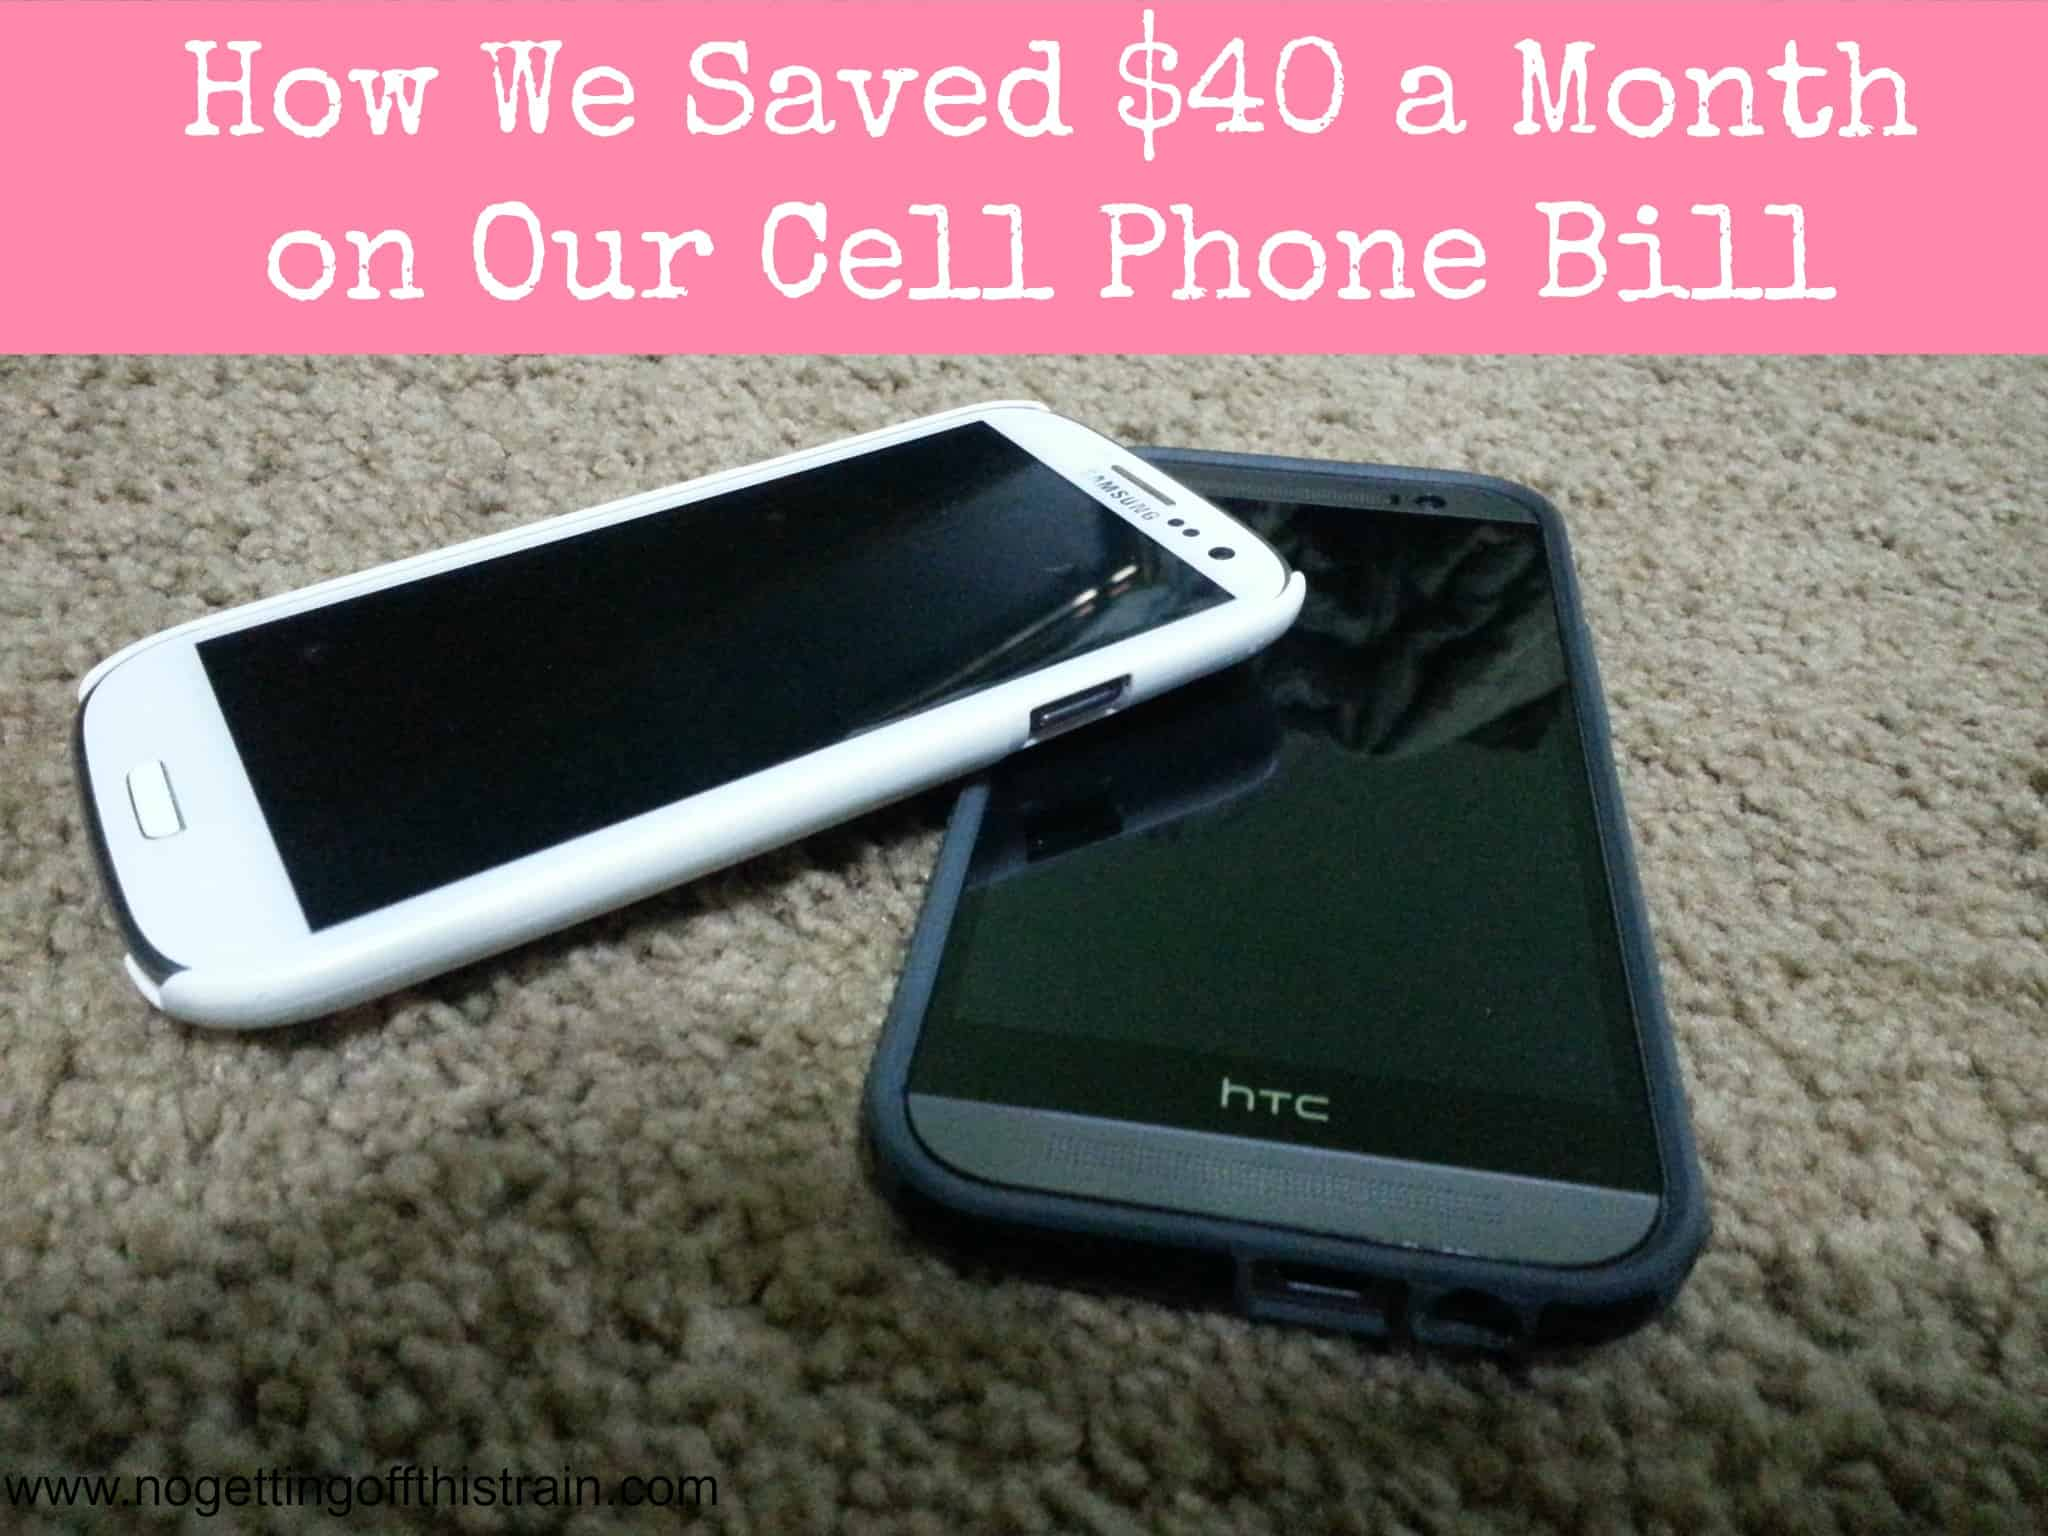 How We Saved $40 a Month on Our Cell Phone Bill